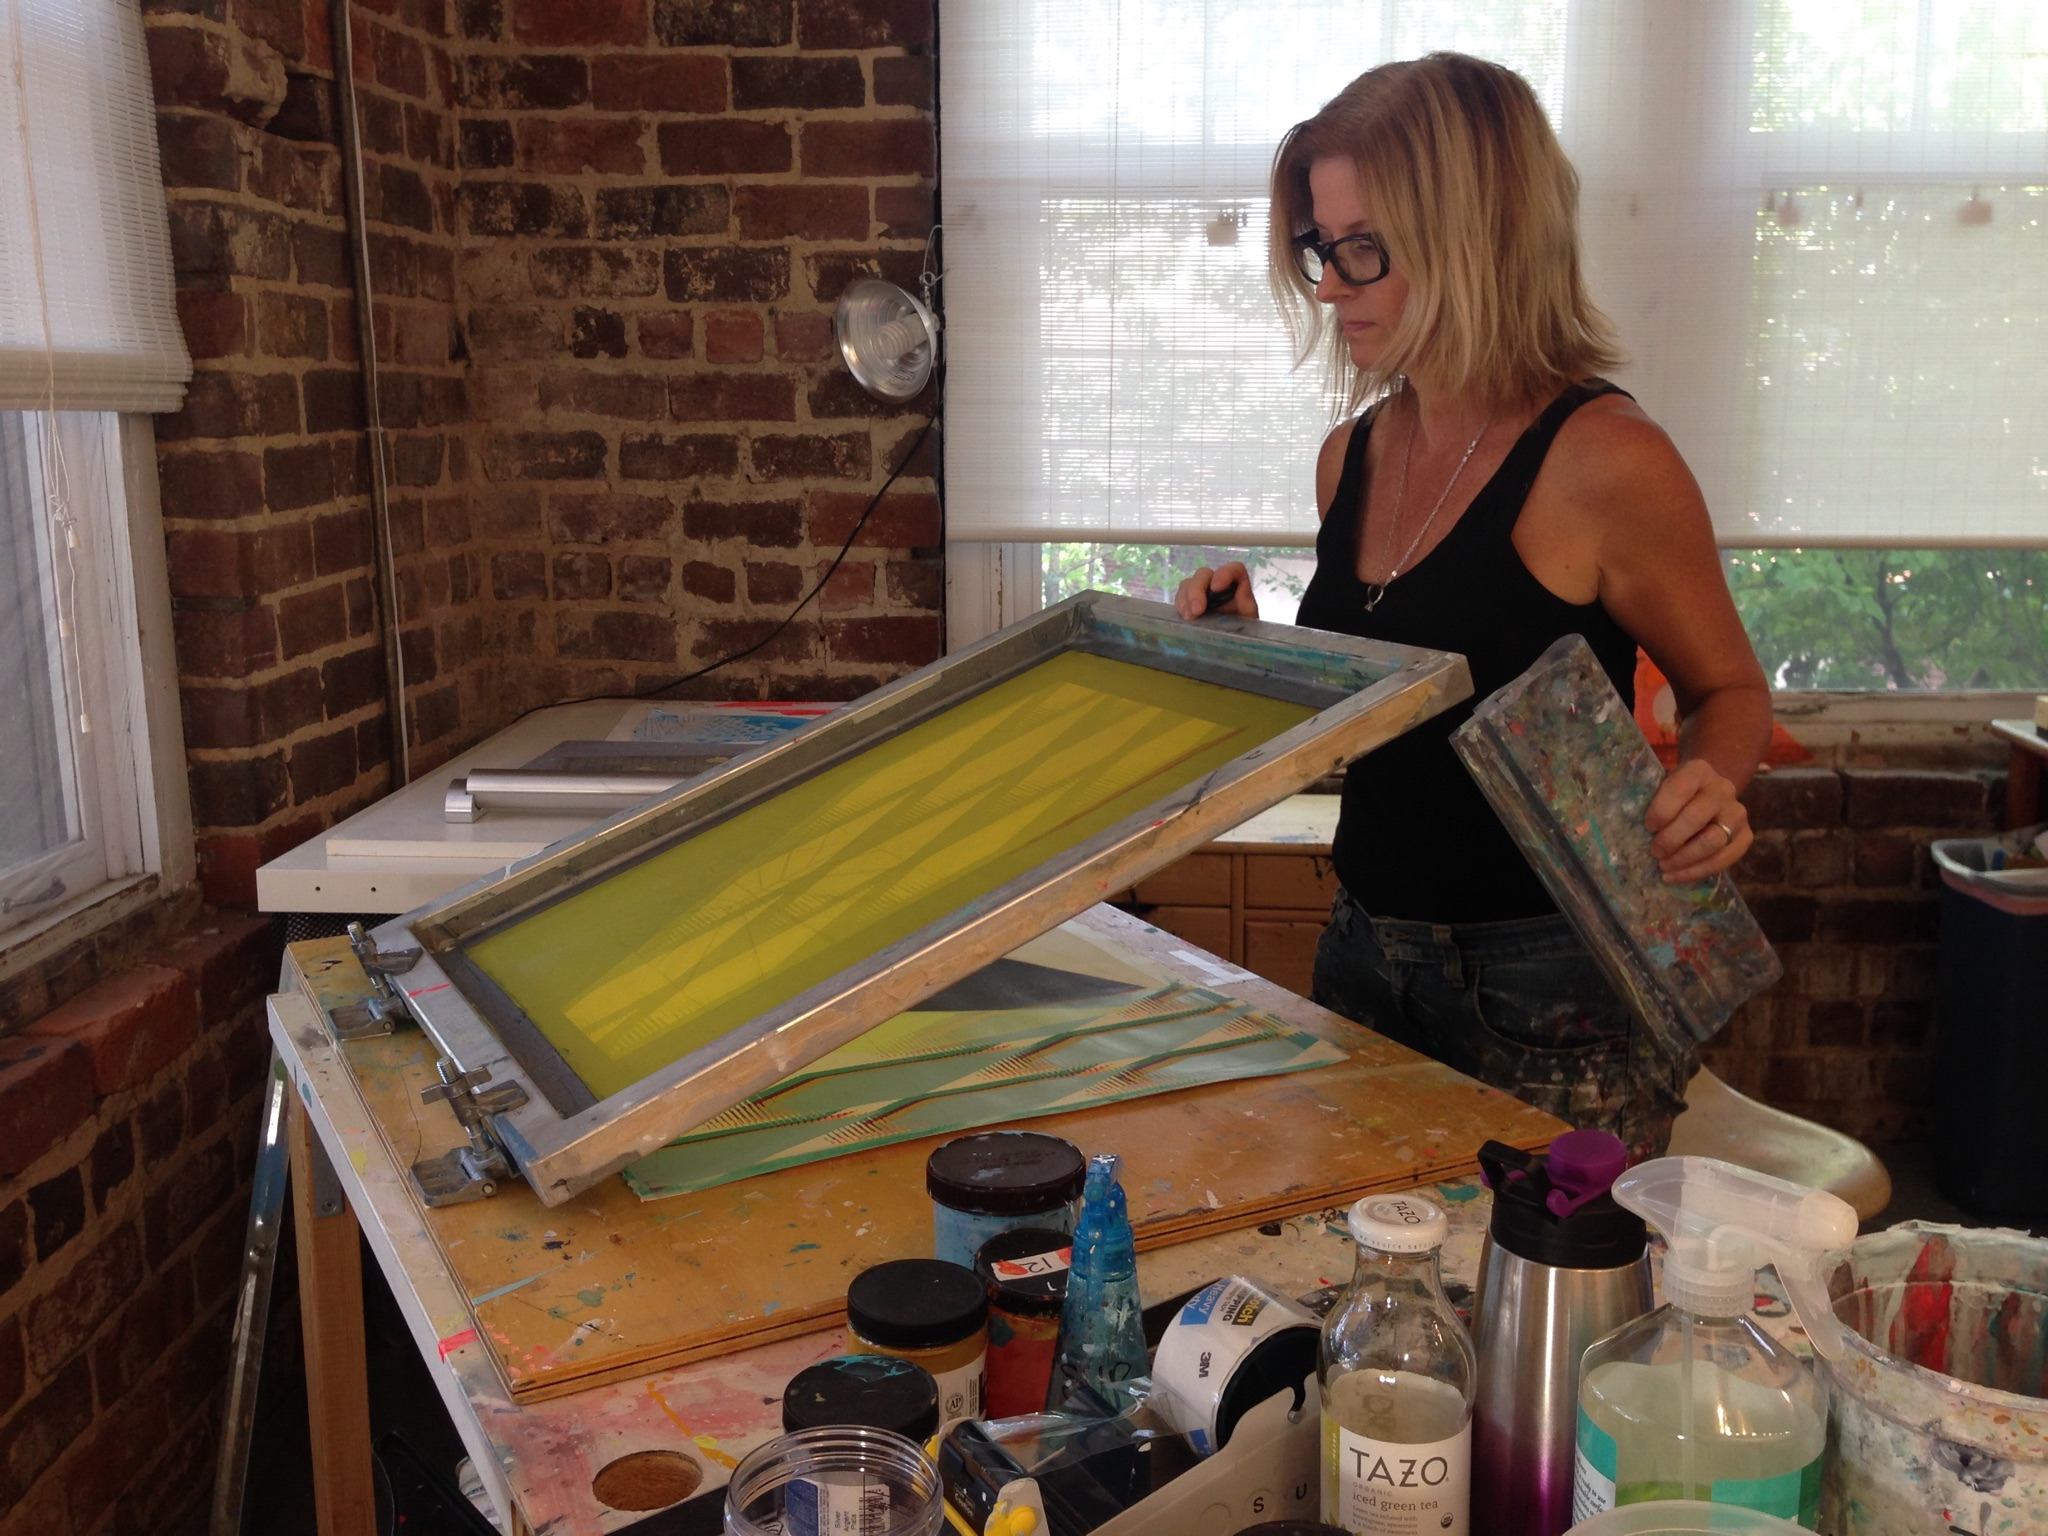 Stacie works with screenprinting equipment in her studio.